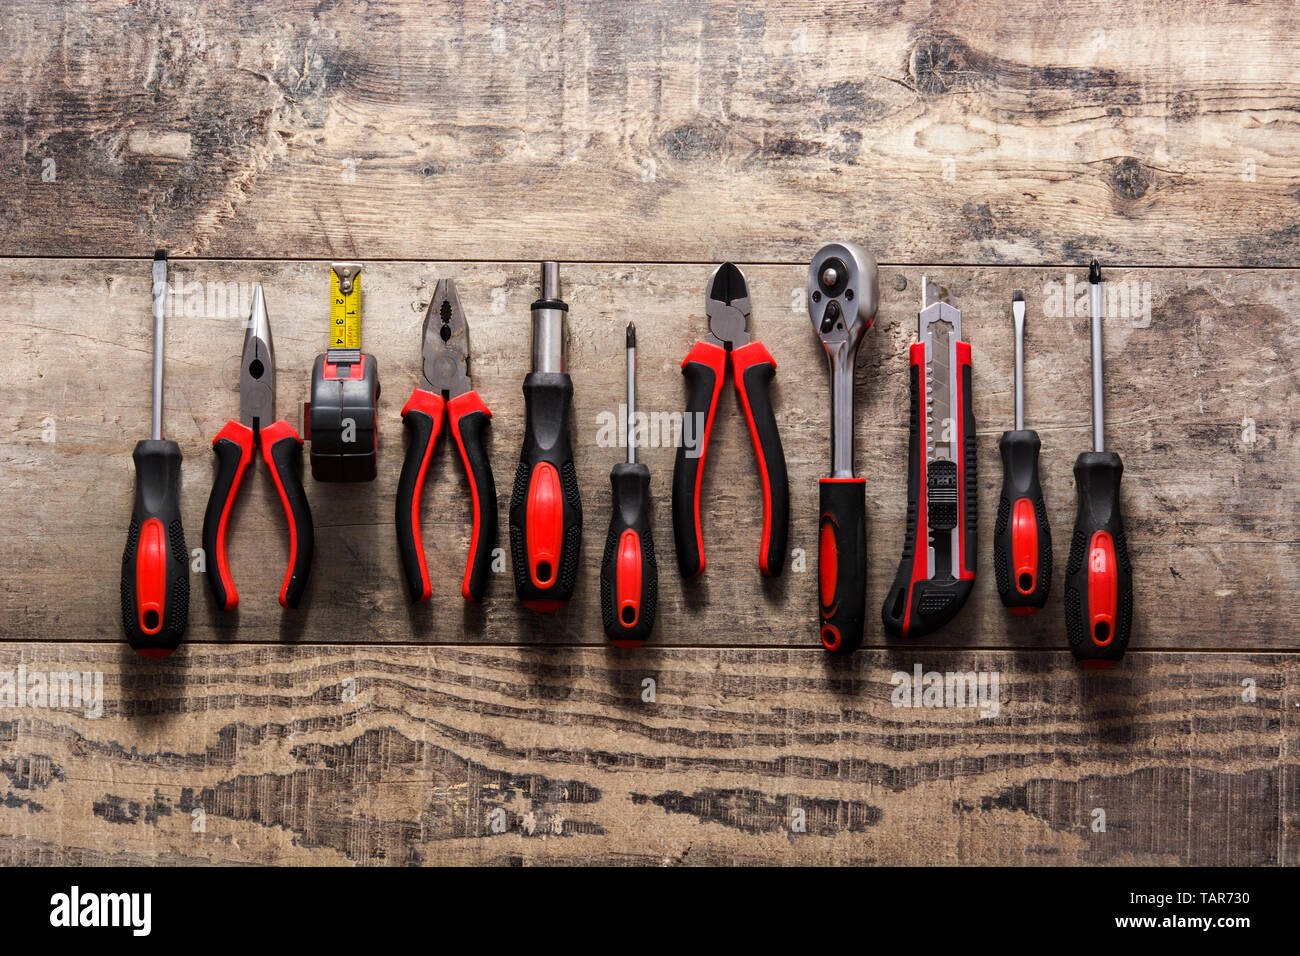 Building tools repair set on wooden table. - Stock Image